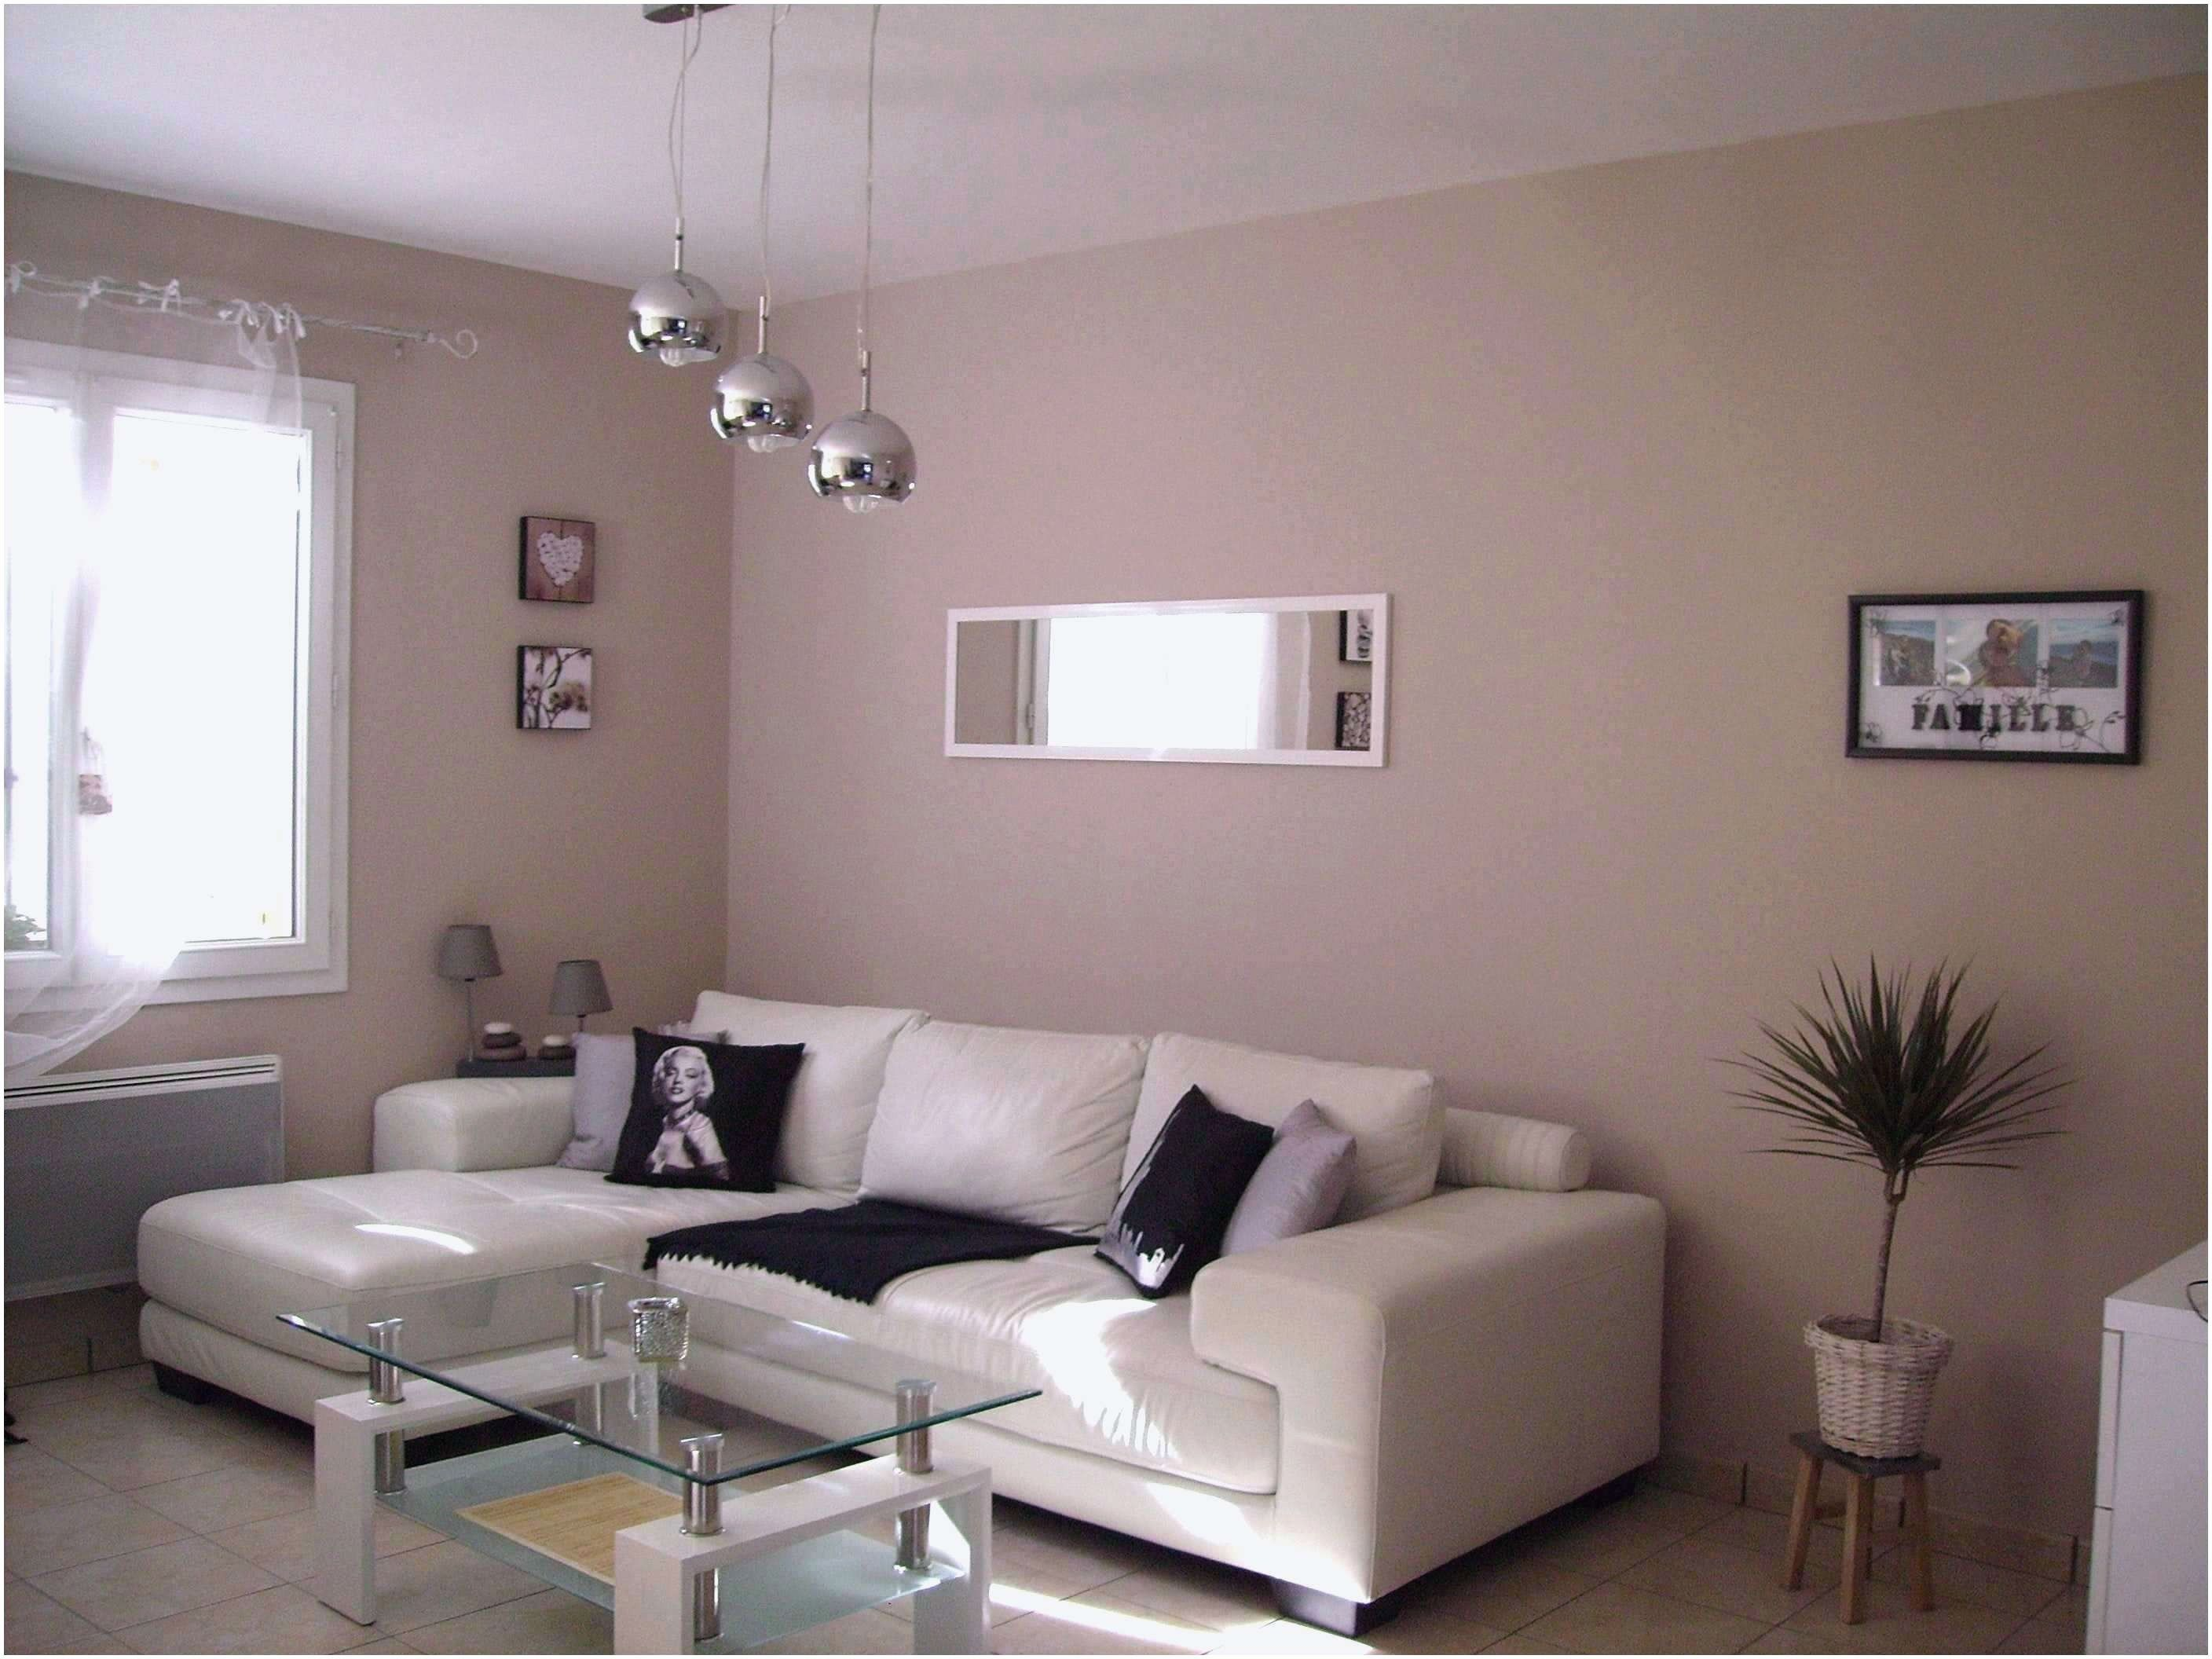 small living room ideas with tv best of 40 inspirierend tv on incredible tv wall design ideas for living room decor layouts of tv models id=49638